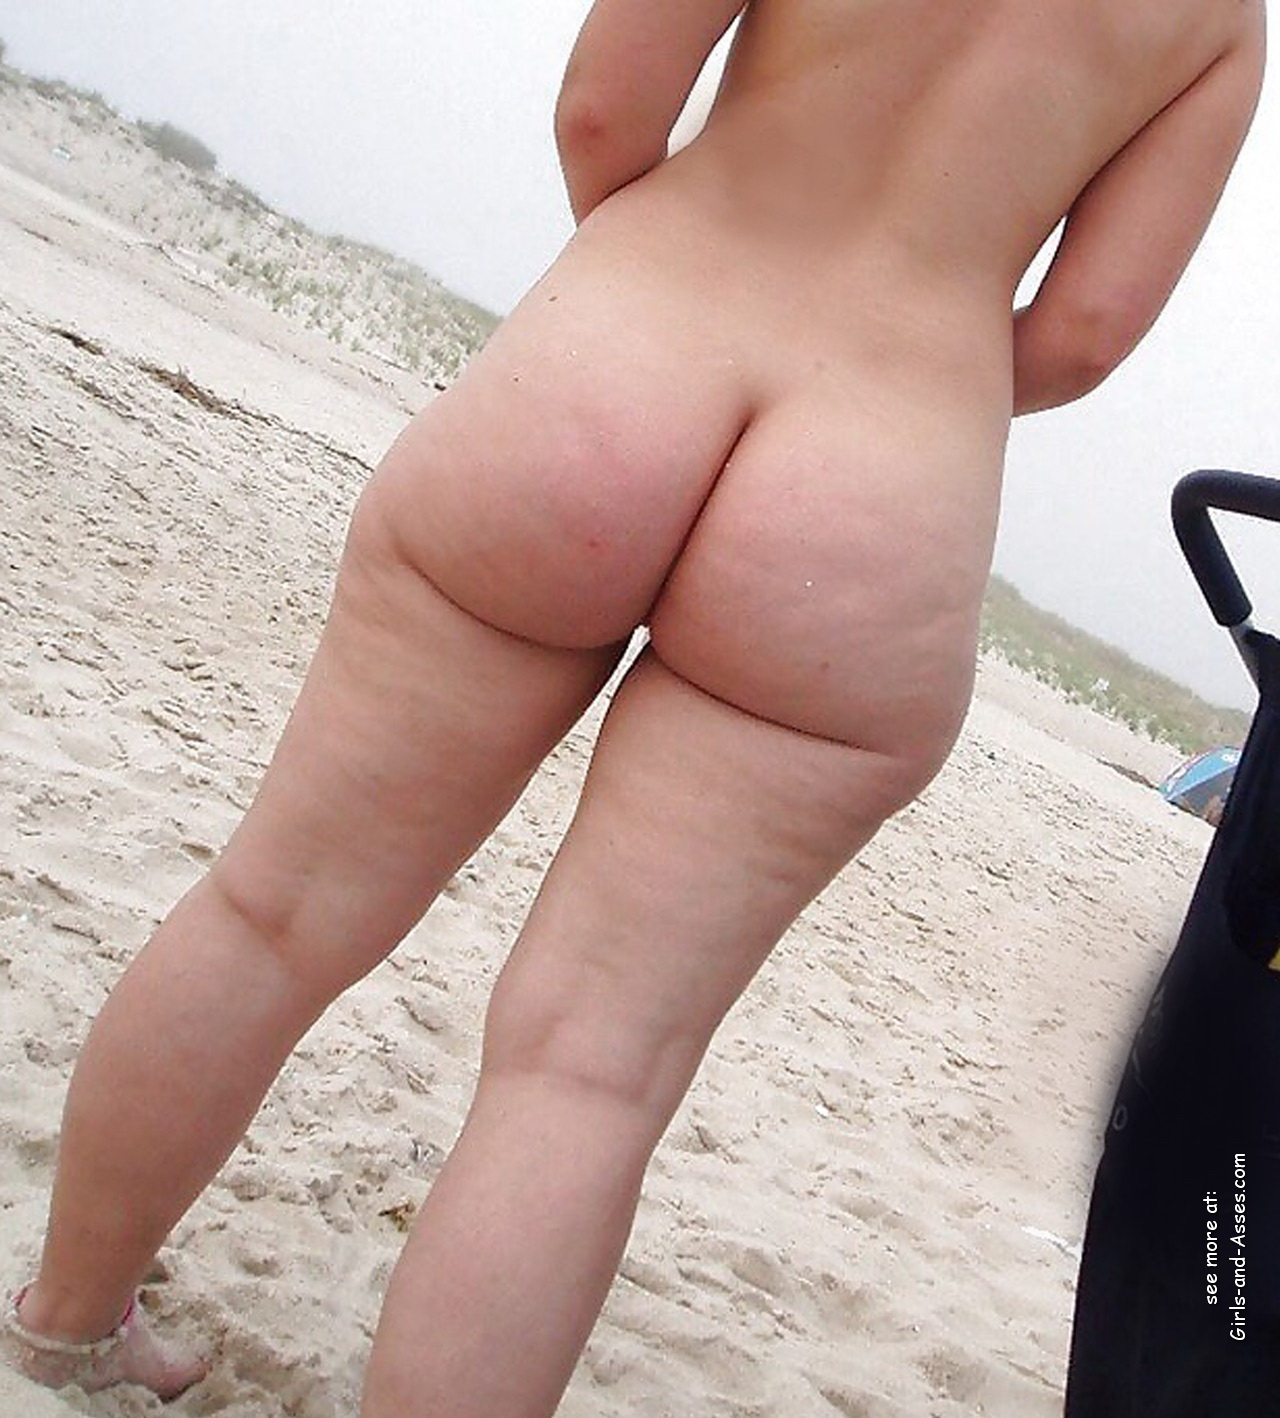 pawg nudity on the beach picture 03133